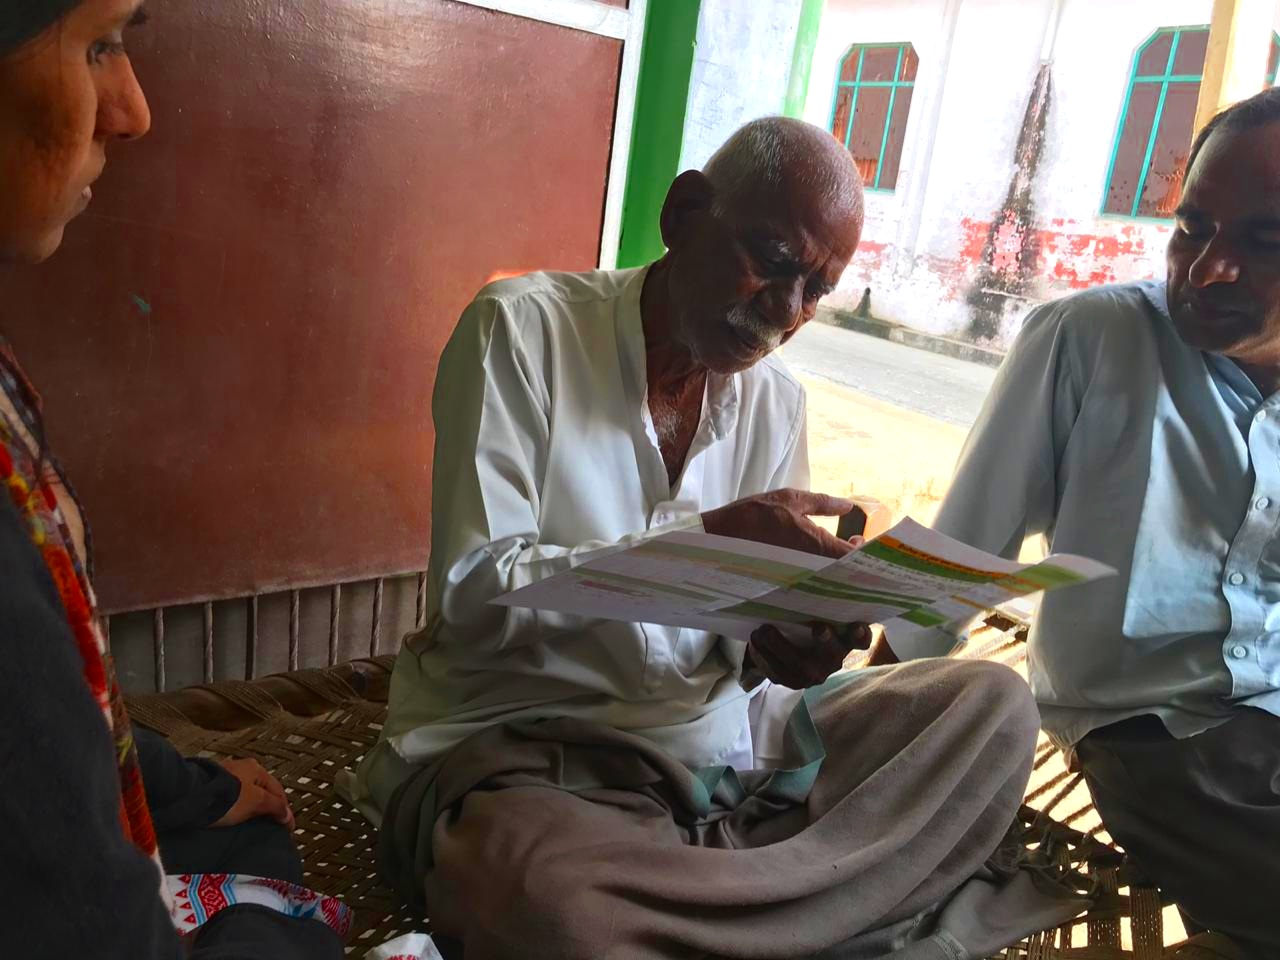 A farmer in Meerut, India tests different iterations of the Soil Health Card.